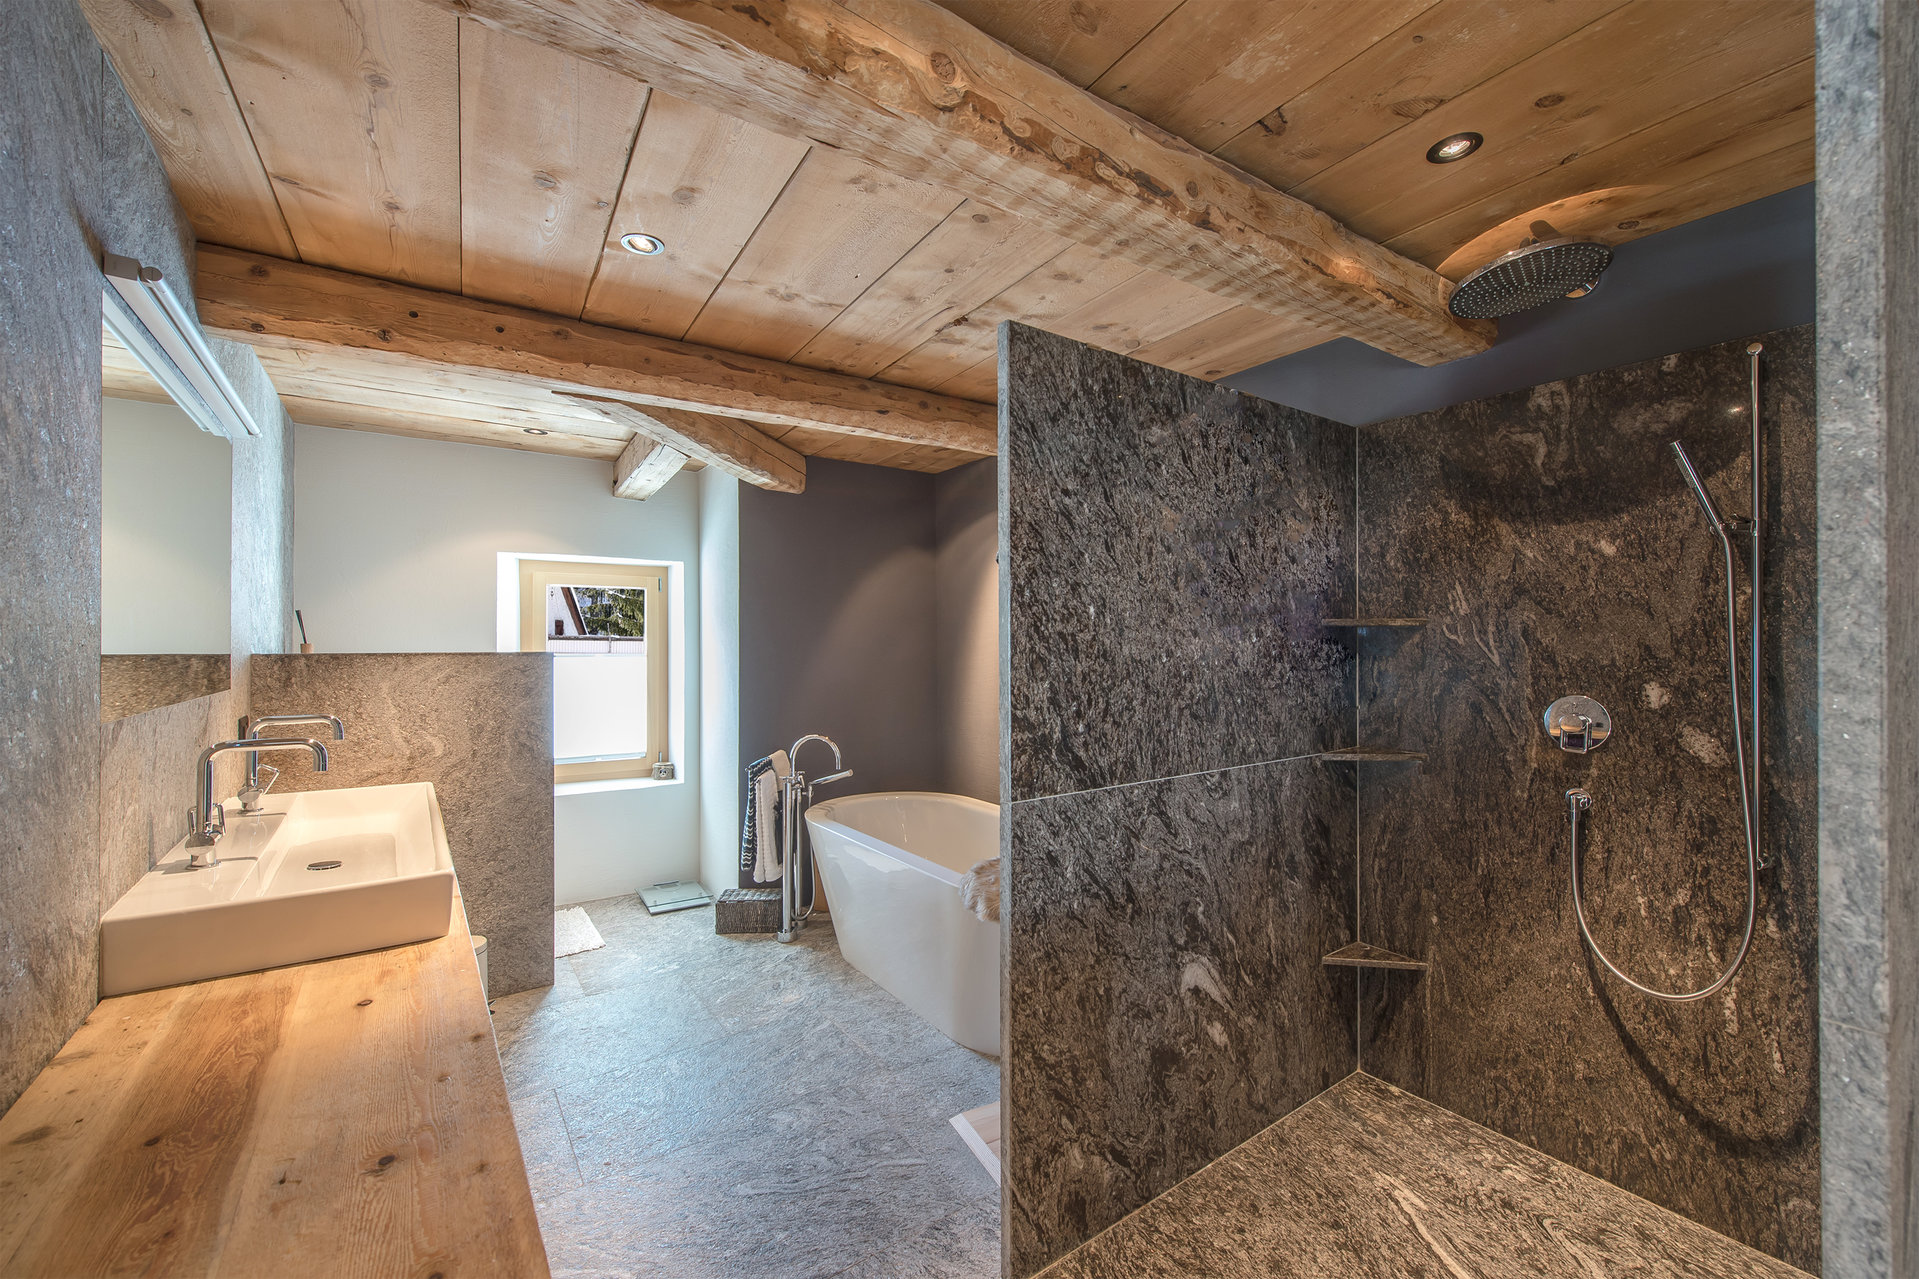 Mountain house for sale in Scoul - master bathroom with sauna